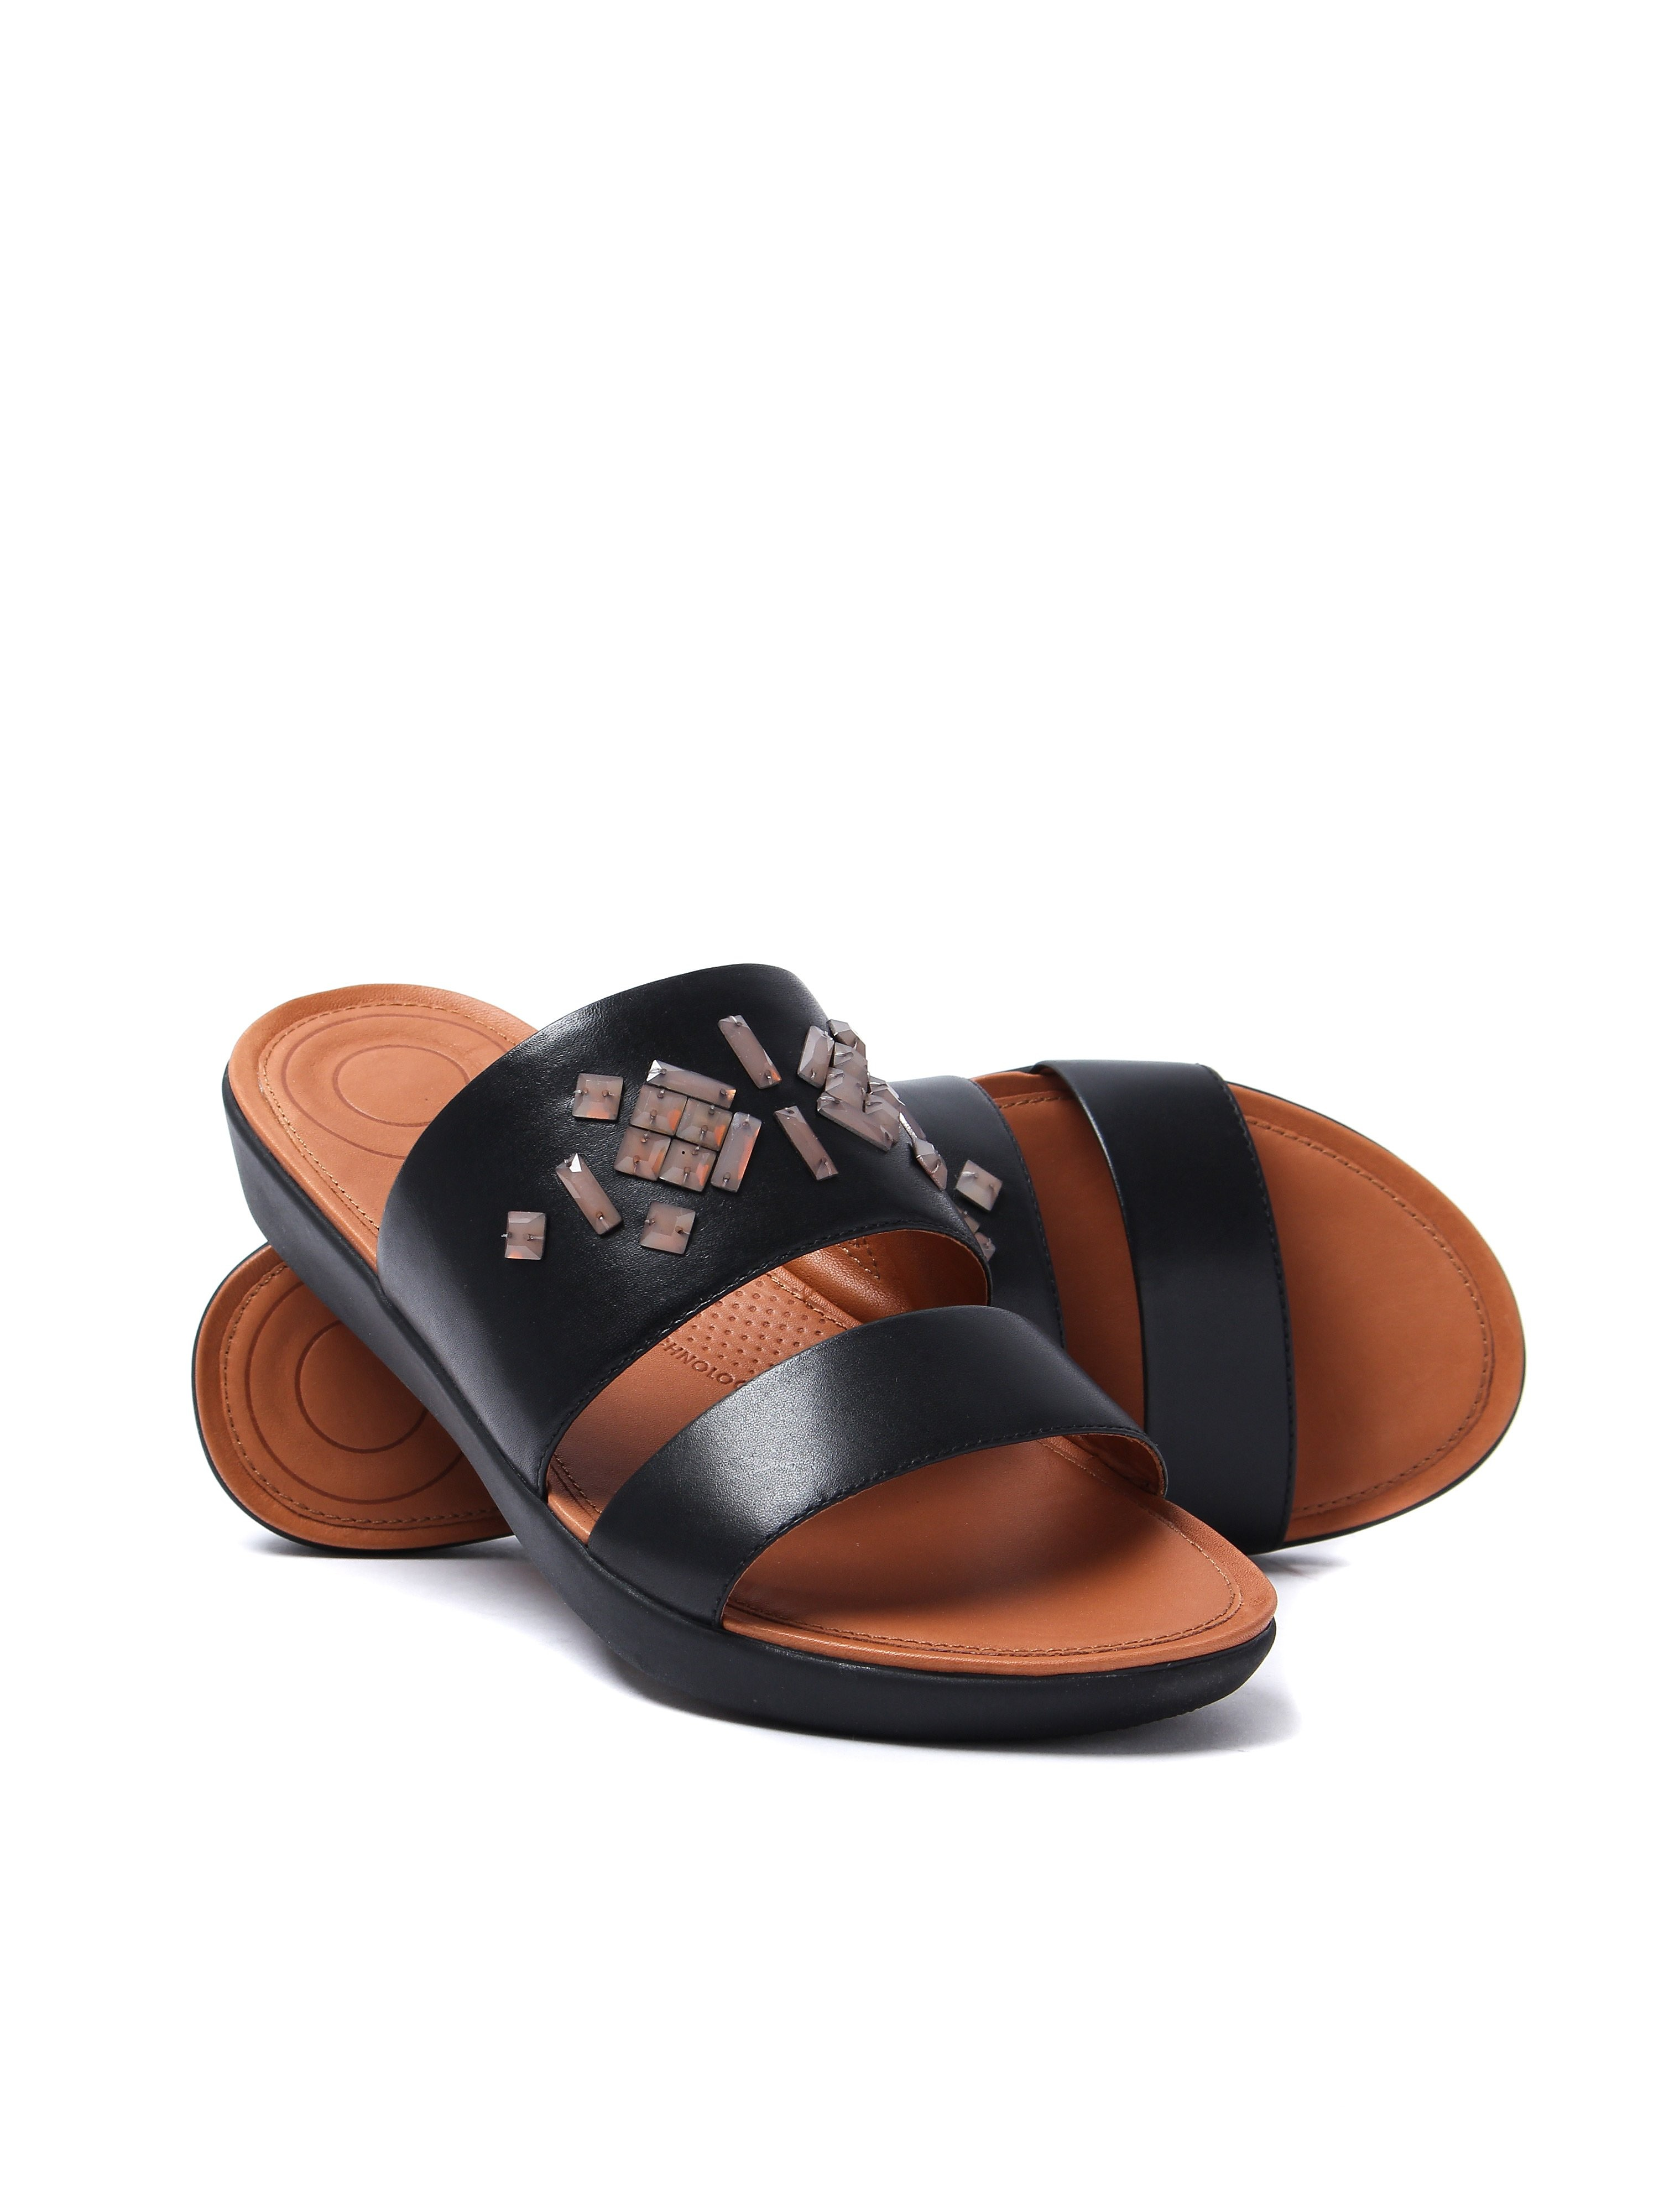 FitFlop Women's Delta Leather Crystal Slide Sandals - Black